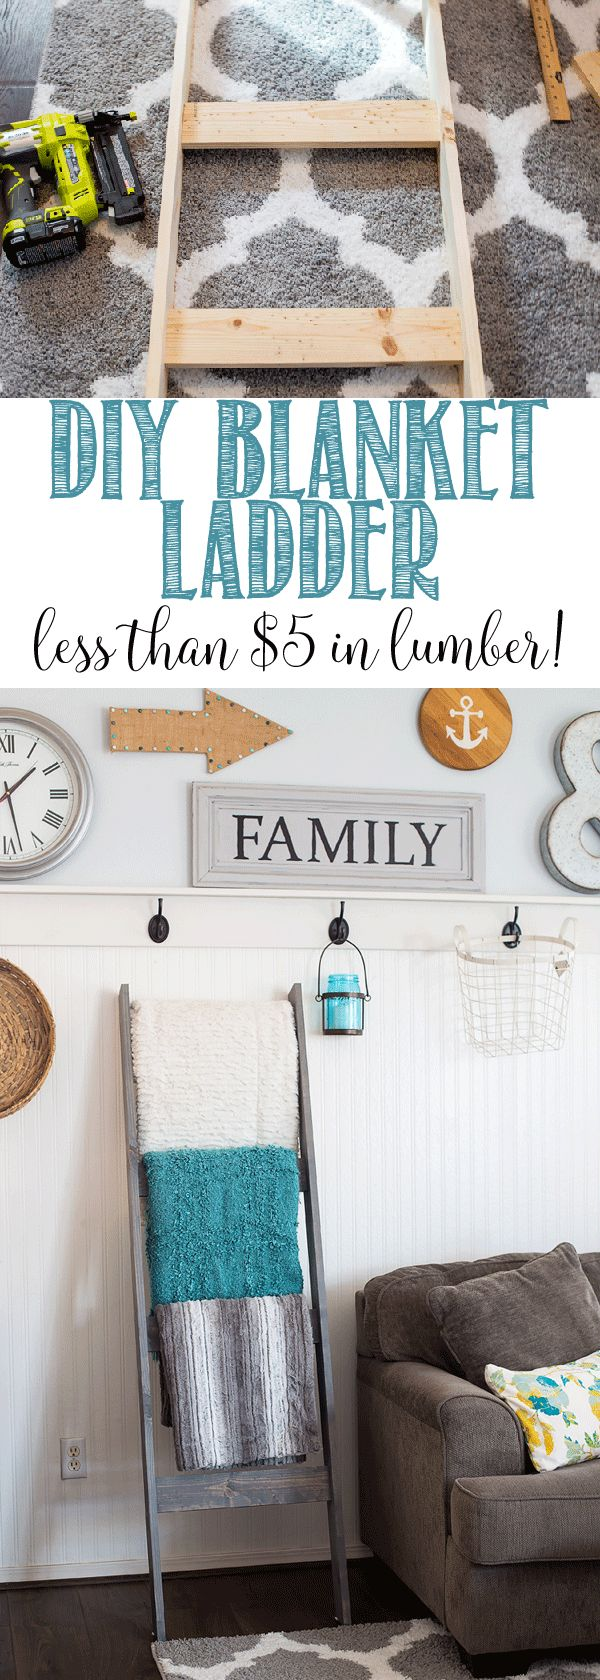 Superb DIY Blanket Ladder For Less Than $5 In Lumber!!!! Great Step By Part 13